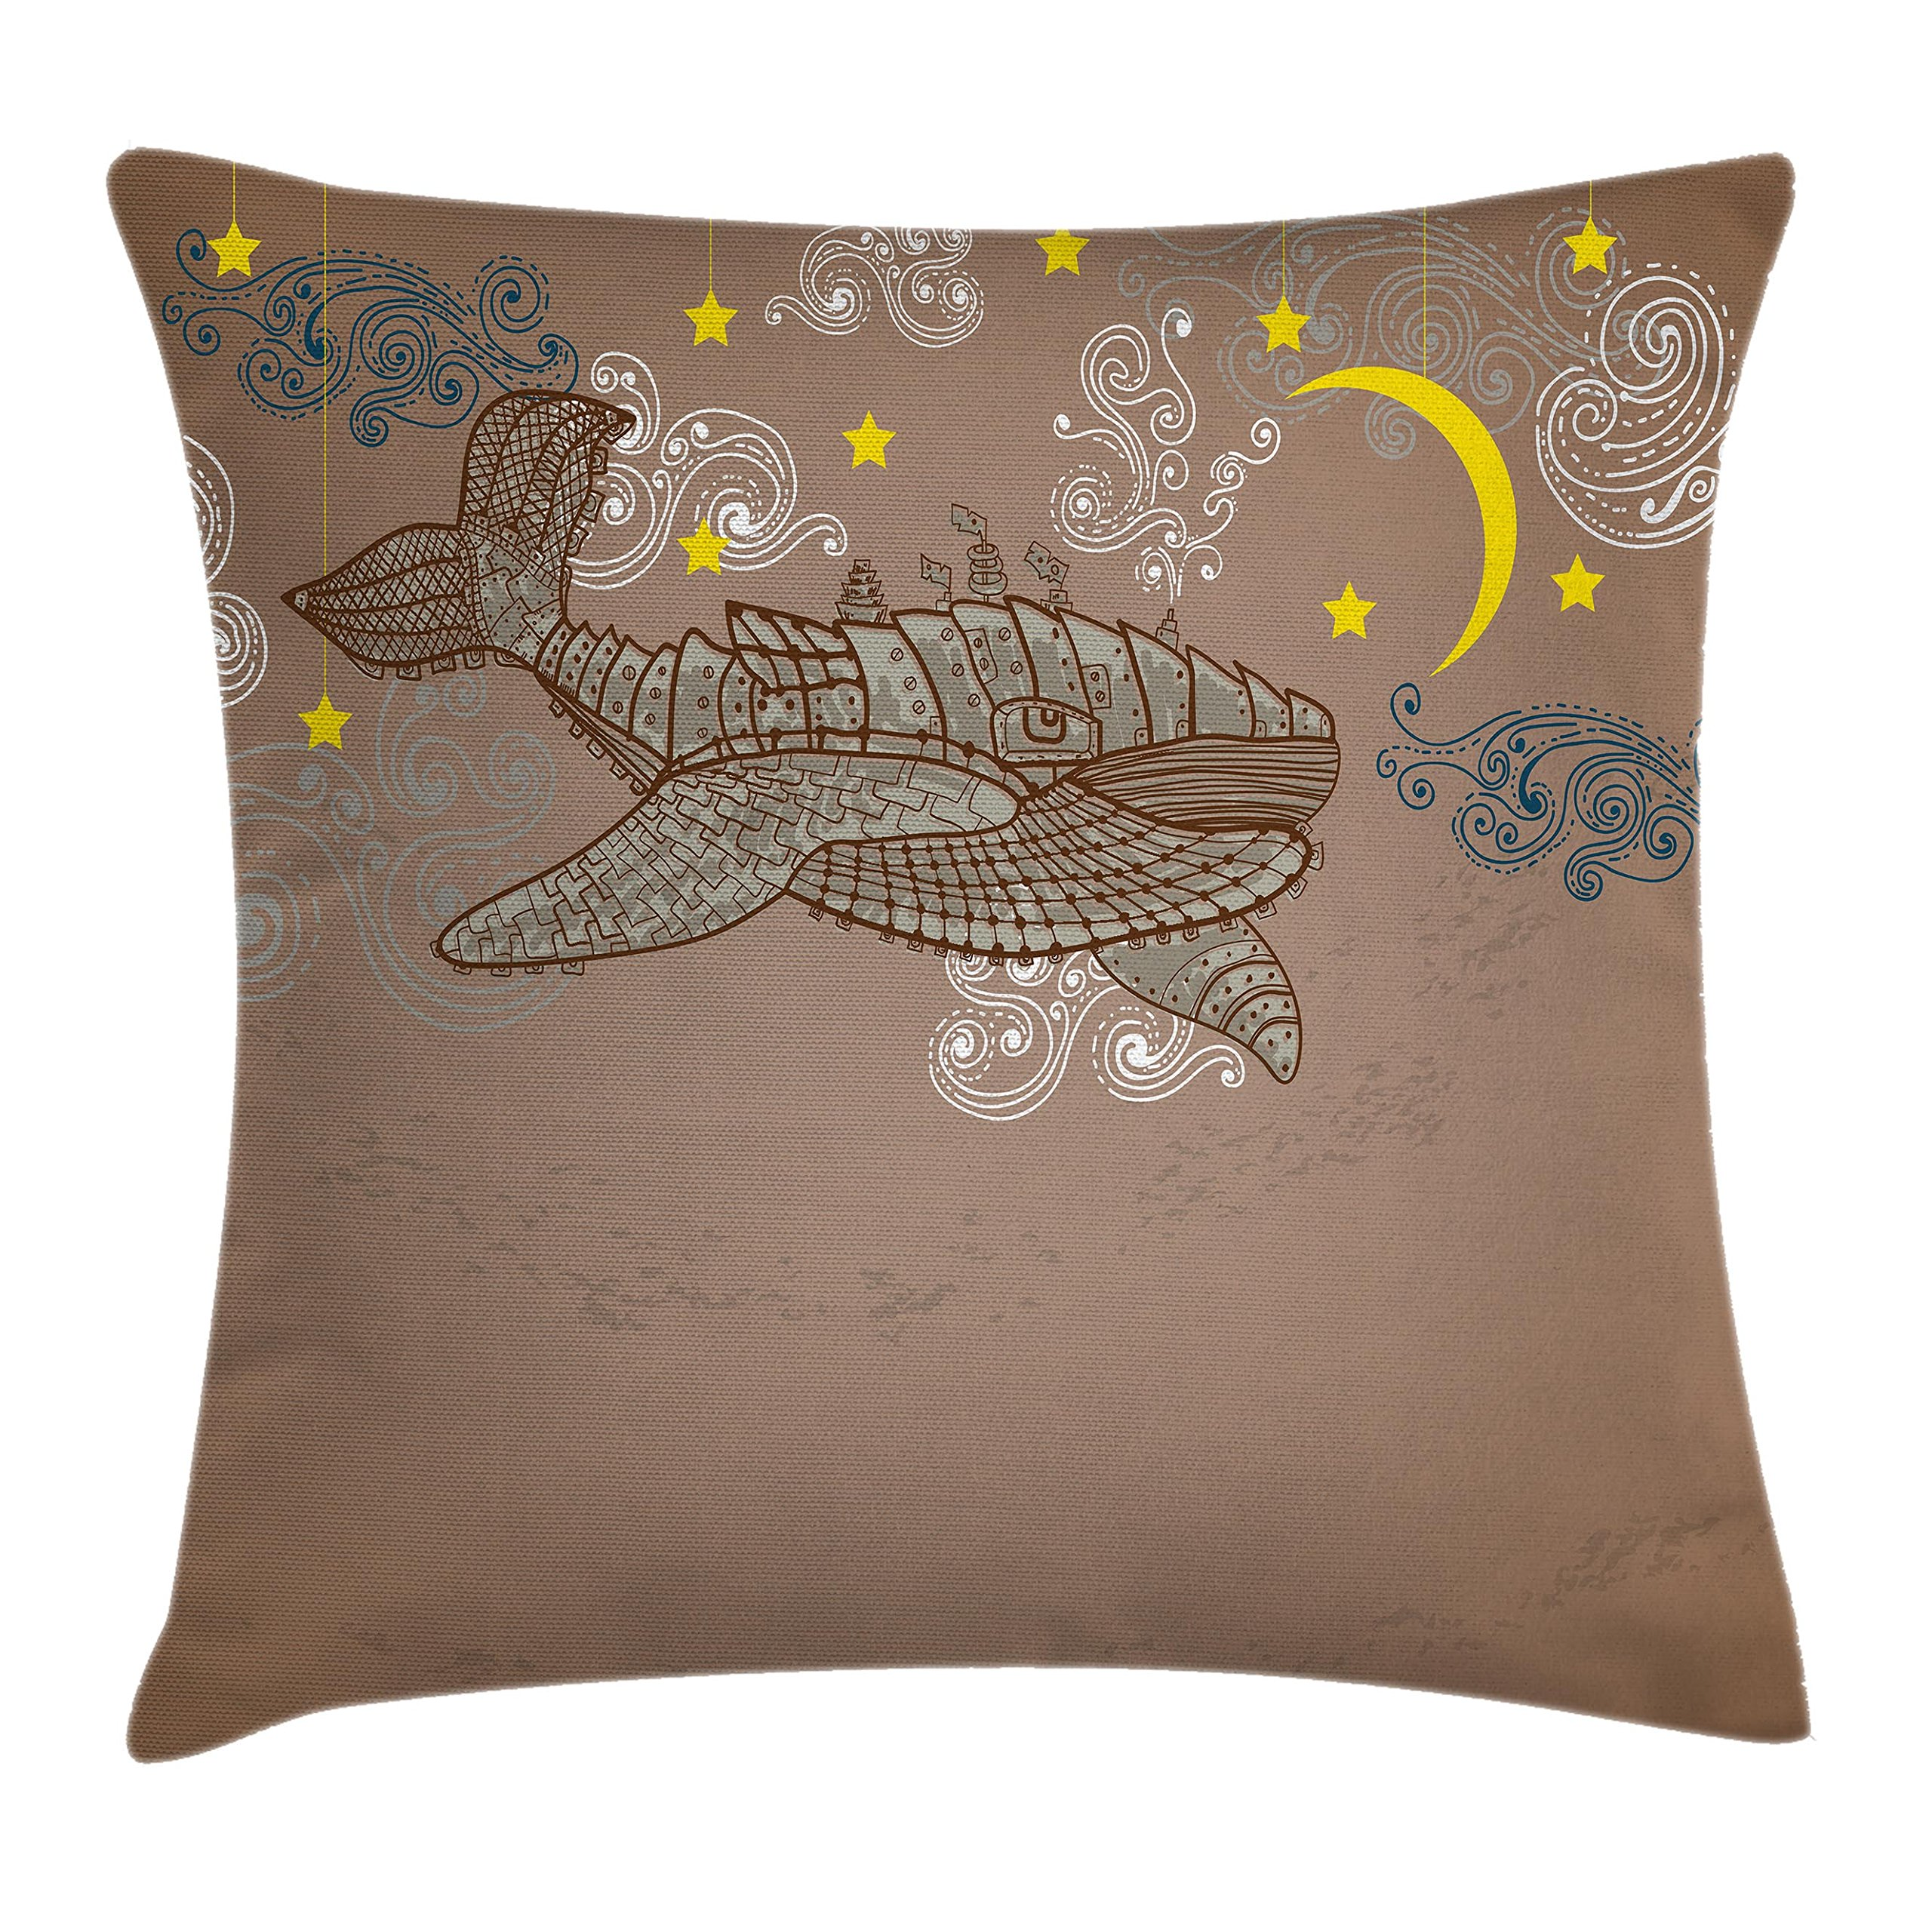 Ambesonne Whale Decor Throw Pillow Cushion Cover, Steampunk Whale Flying on Air with Moons and Stars Artistic Hand Drawing, Decorative Square Accent Pillow Case, 20 X 20 Inches, Brown and White